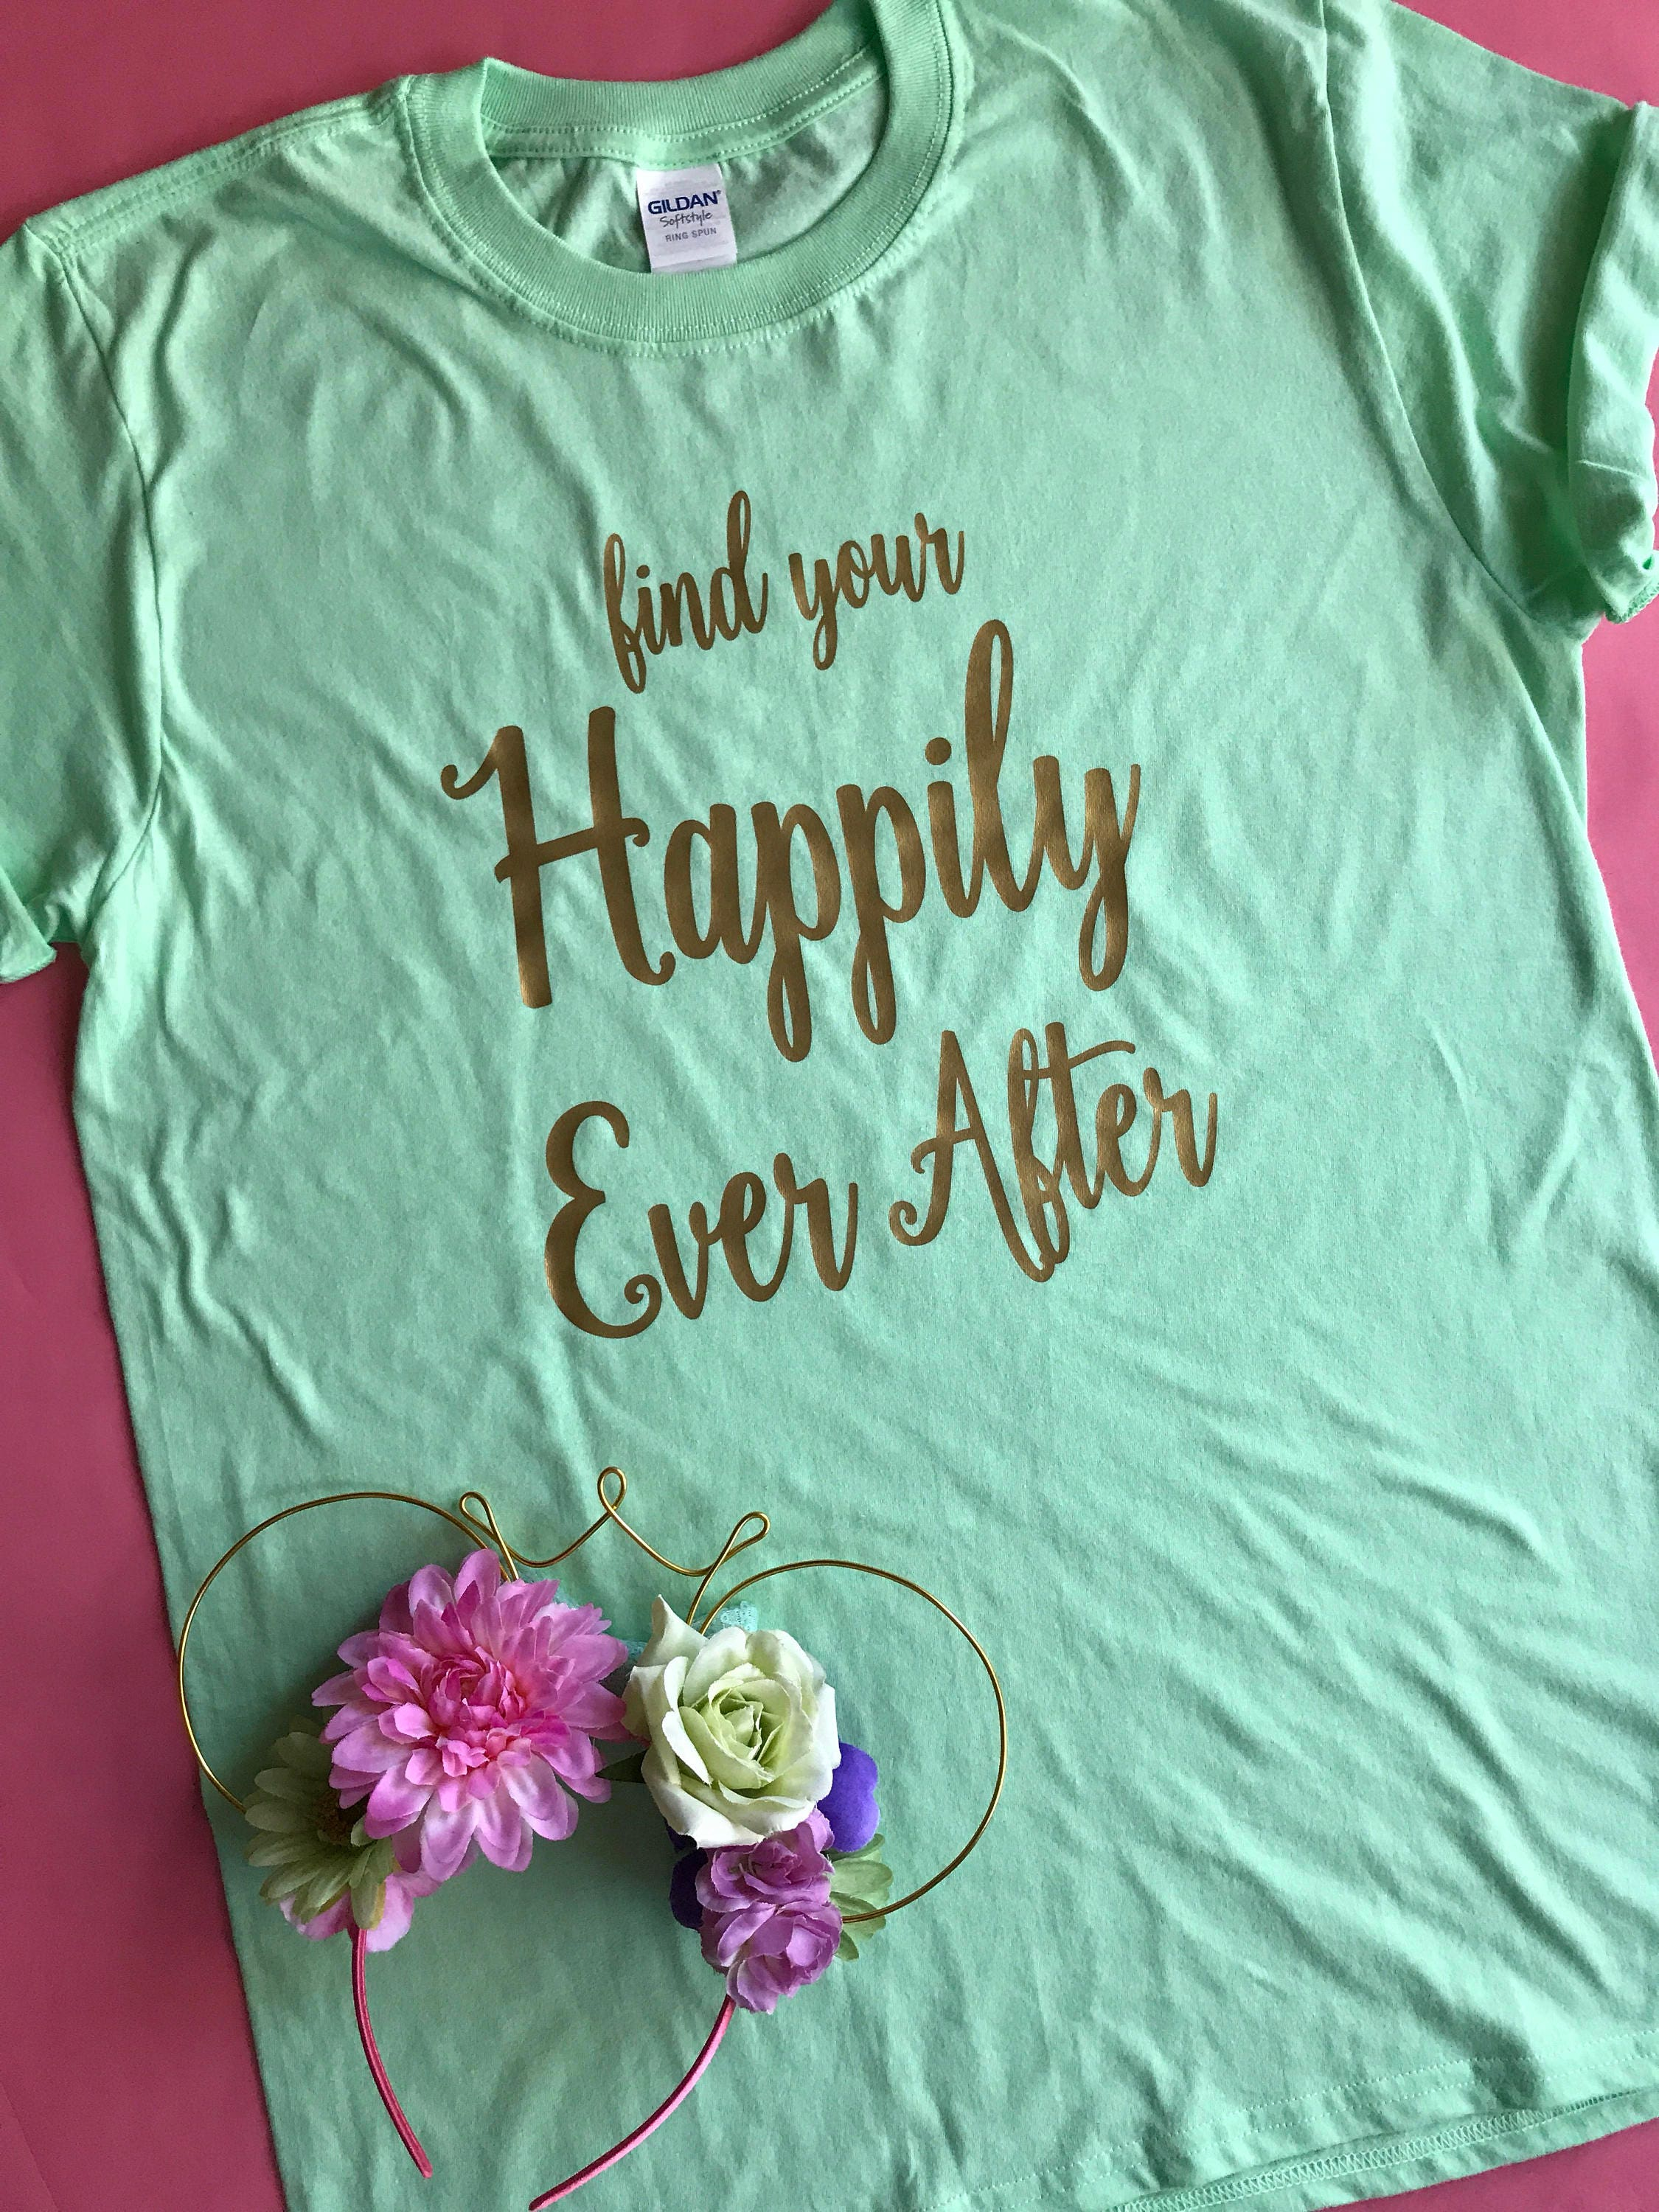 Find your happily ever after disney parks disney world for Disney happily ever after shirt